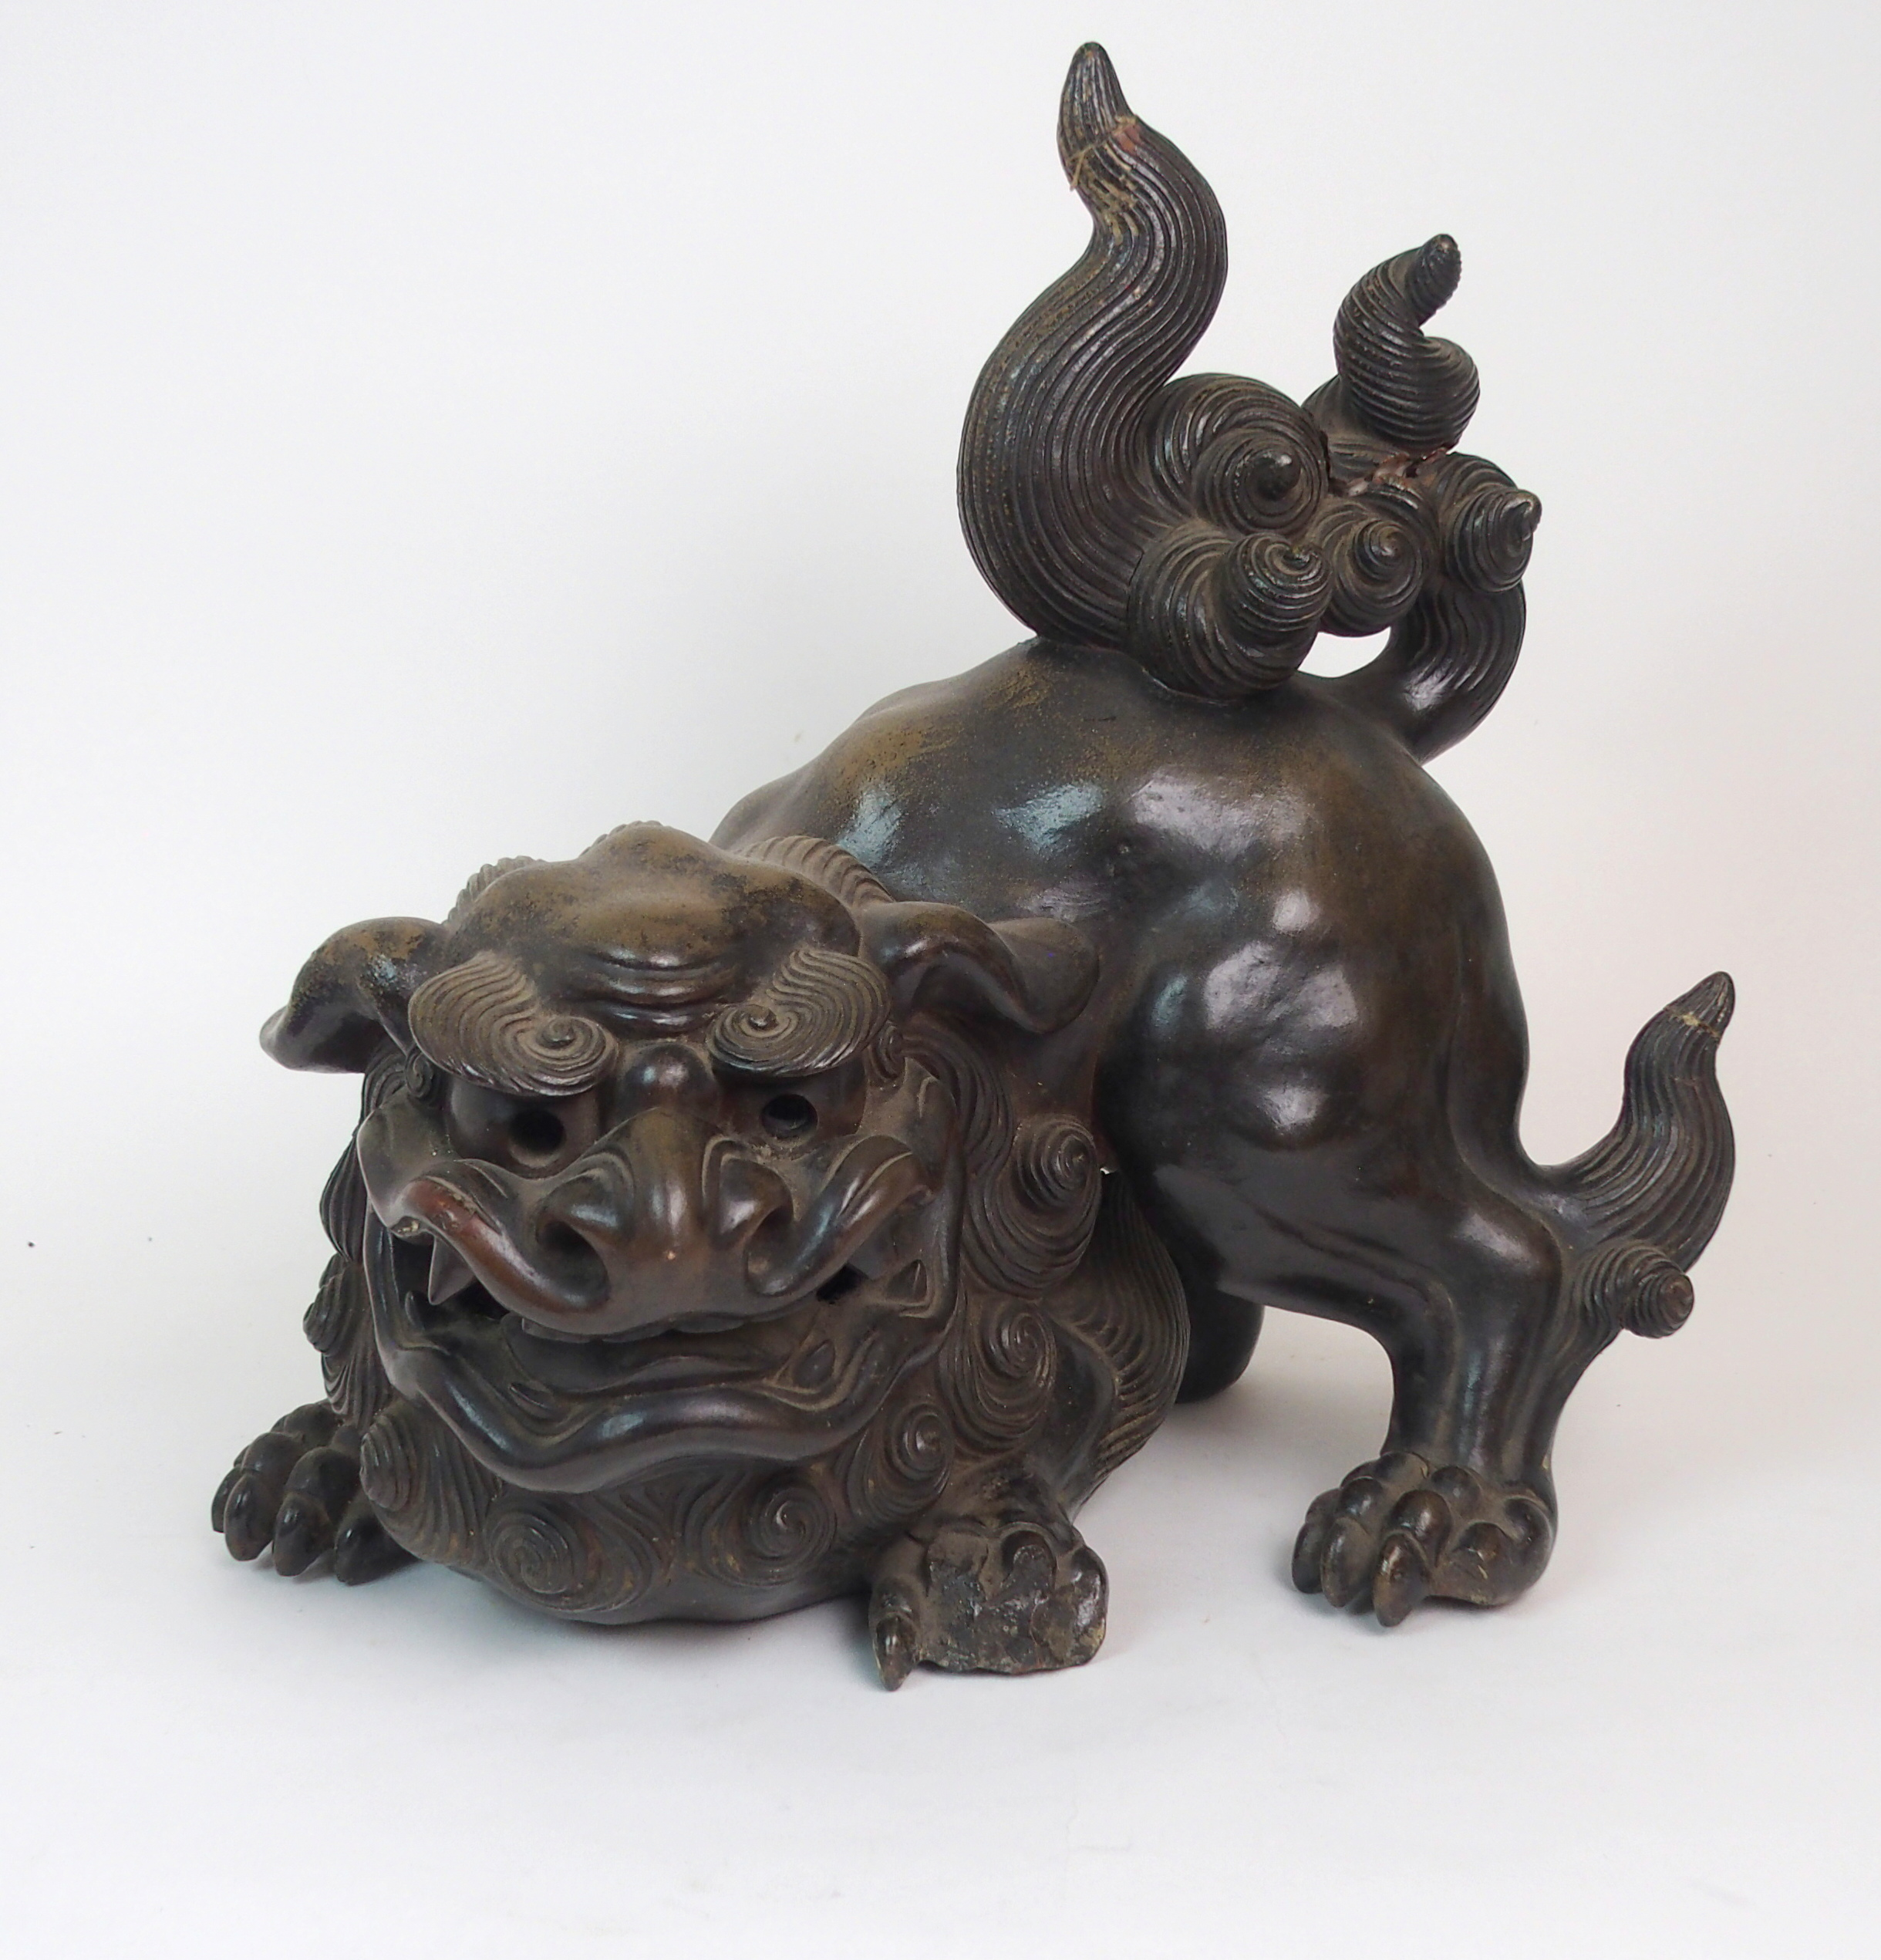 Lot 50 - A LARGE CHINESE PAINTED TERRACOTTA BUDDHISTIC LION modelled in aggressive stance with mouth roaring,